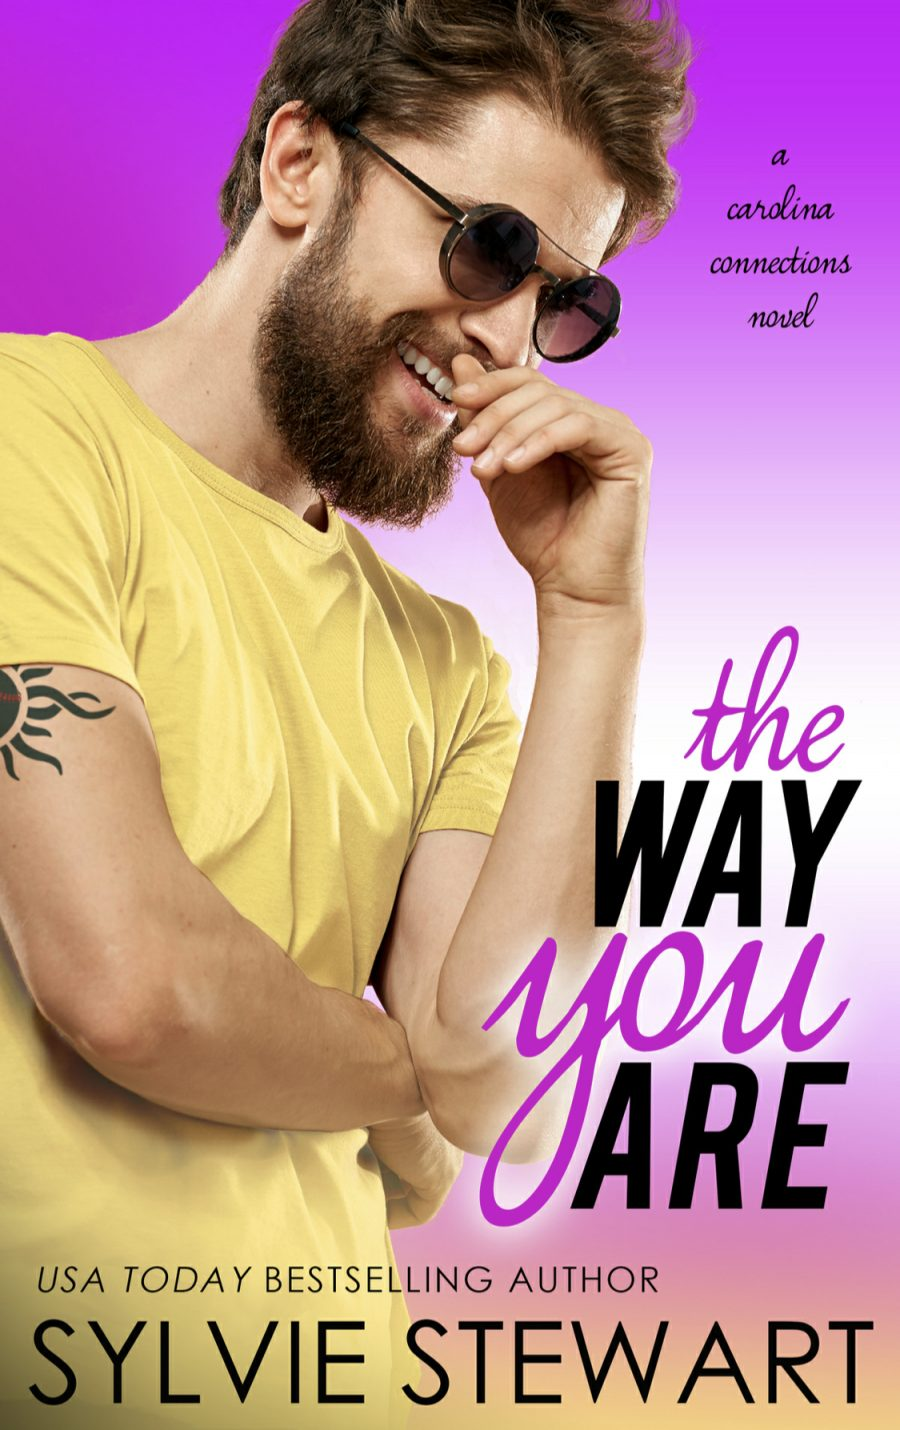 The Way You Are by Sylvie Stewart - A Book Review #BookReview #Contemporary #Romance #HEA #CarolinaConnections #KindleUnlimited #KU